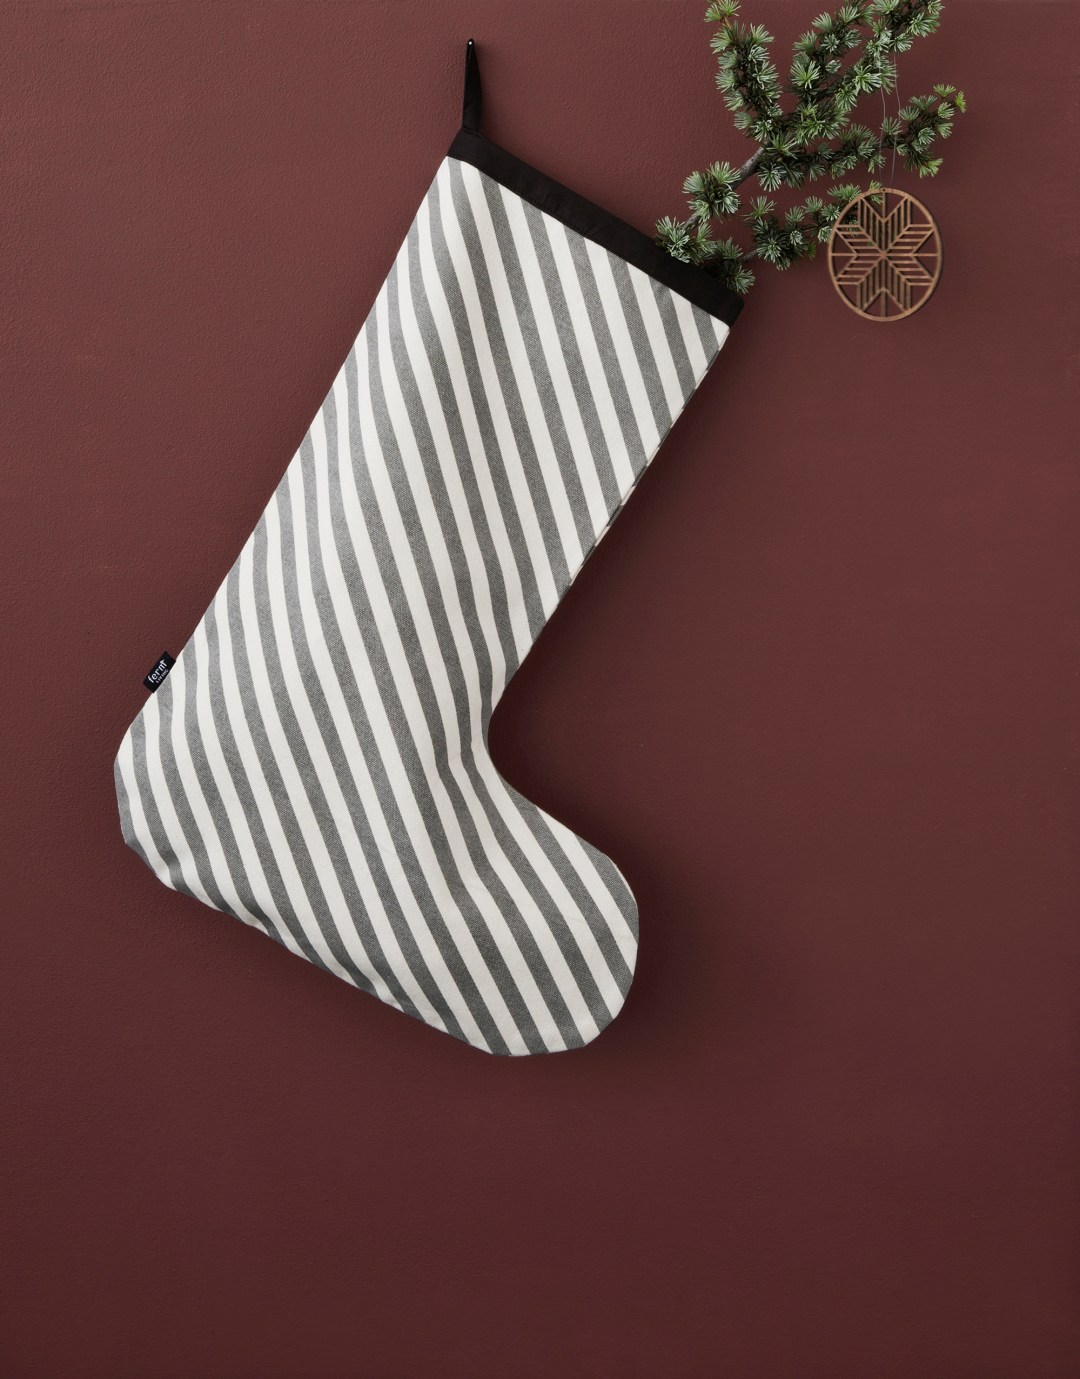 Simple Christmas decorations - Ferm Living